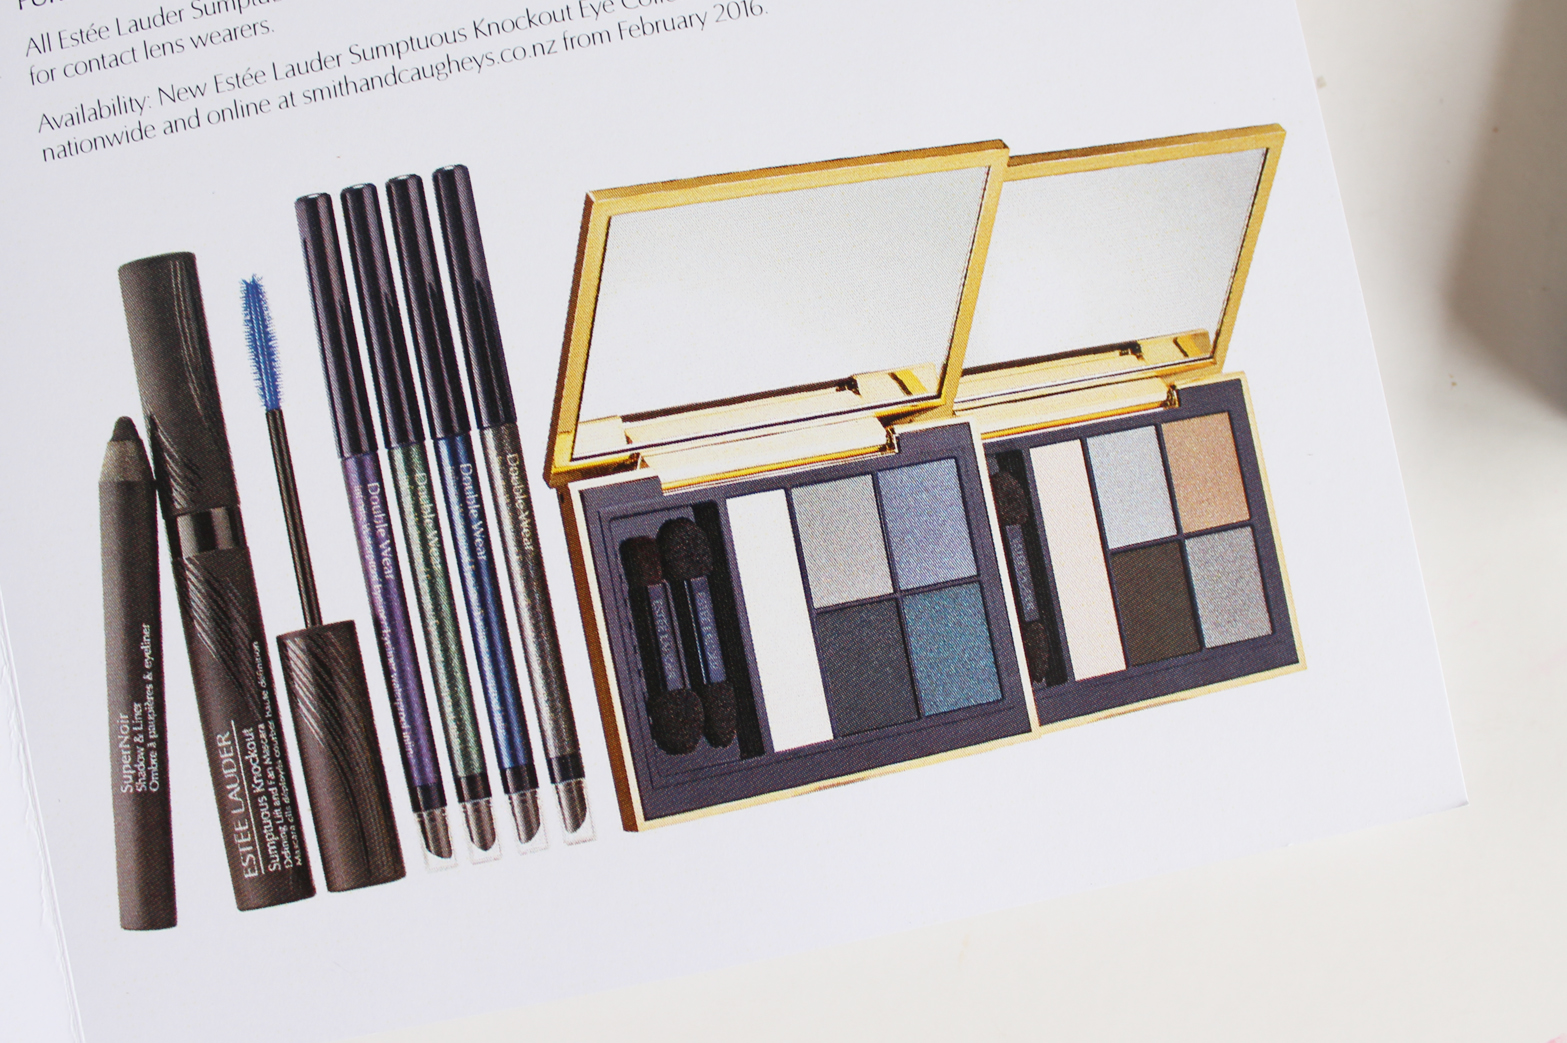 ESTEE LAUDER | Latest Product Launches Reviewed - Feb + March  - Sumptuous Knockout Mascara - CassandraMyee